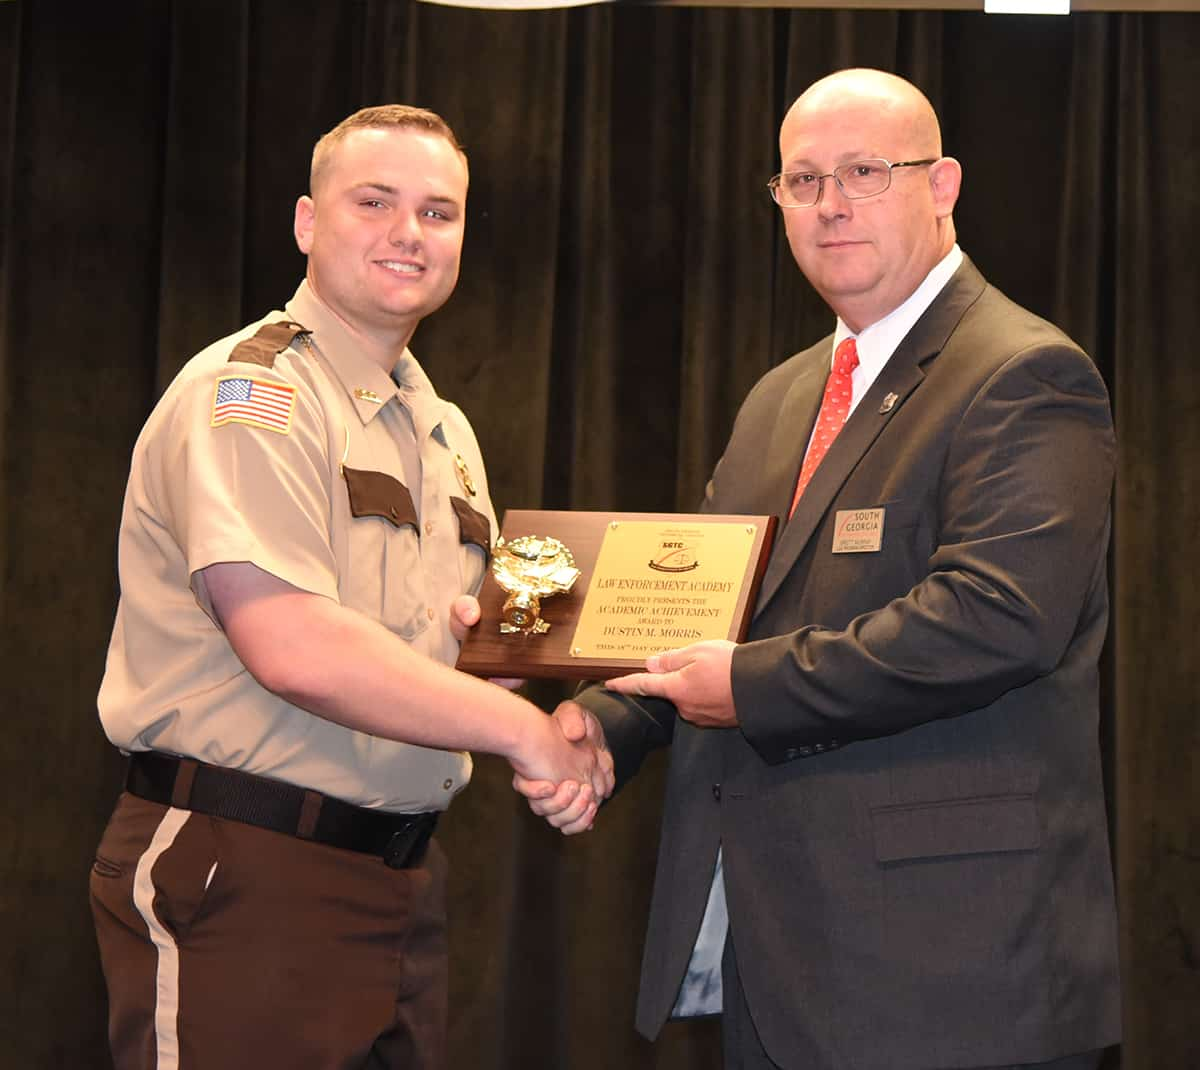 SGTC LEA Academy Director Brett Murray is shown above presenting Dustin Morgan Morris of Tifton with the Academic Achievement Award for the Class of 18-01.